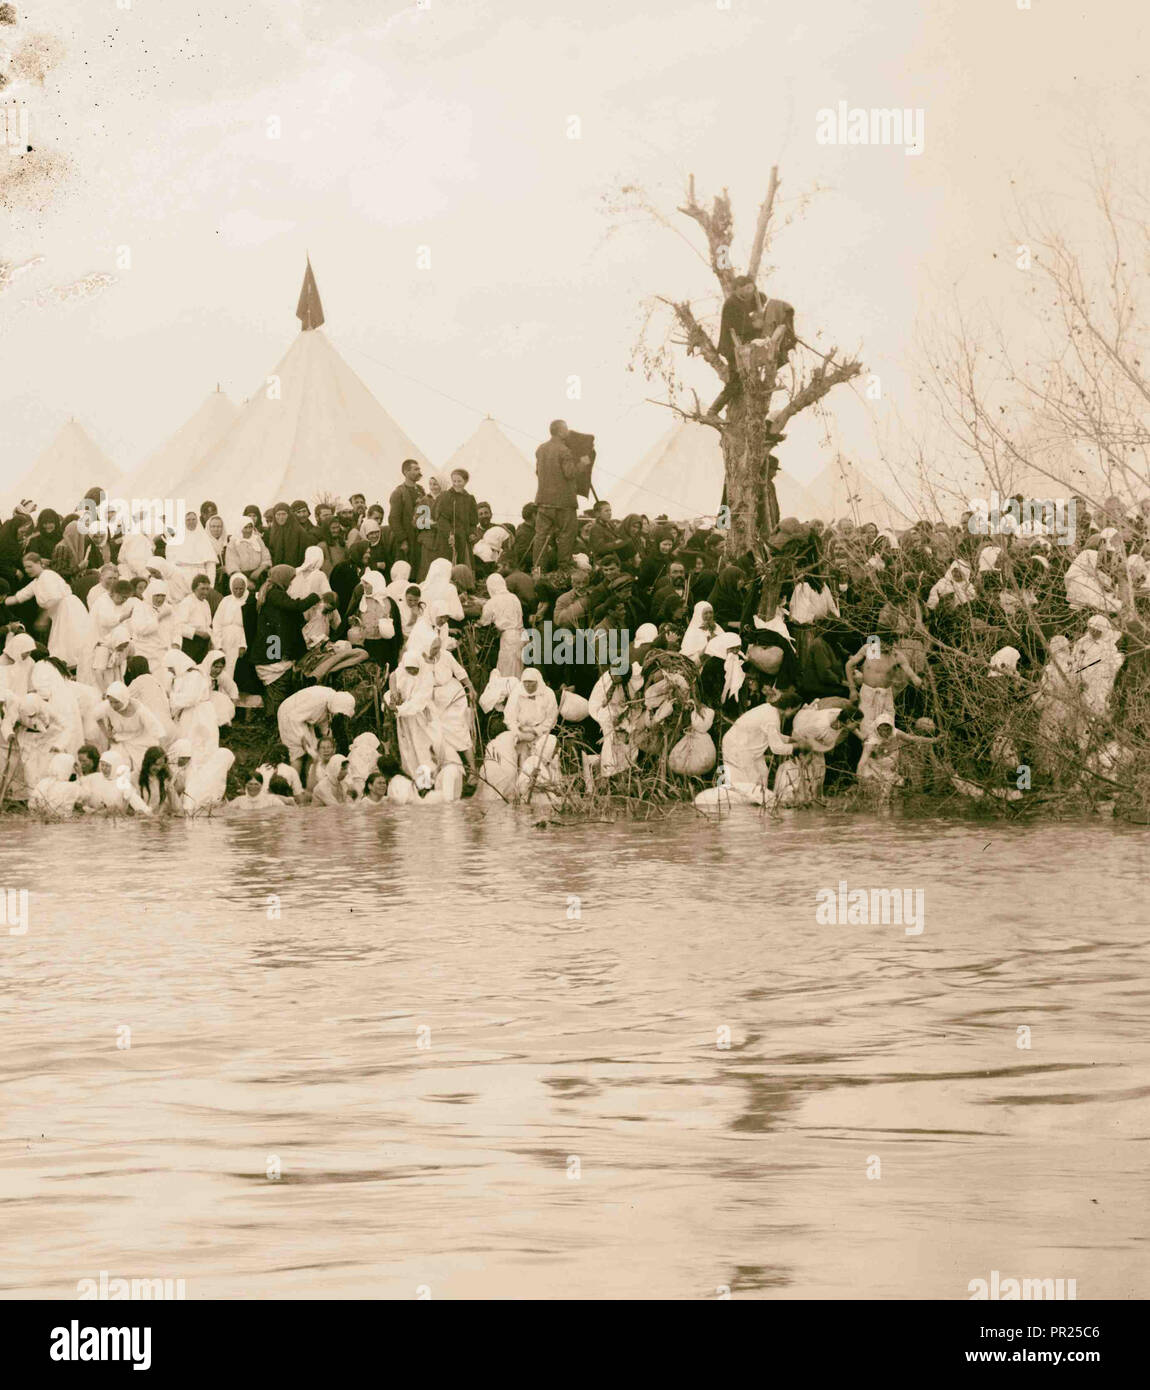 Costumes, characters and ceremonies, etc. Pilgrims immersing in the Jordan. 1898 - Stock Image